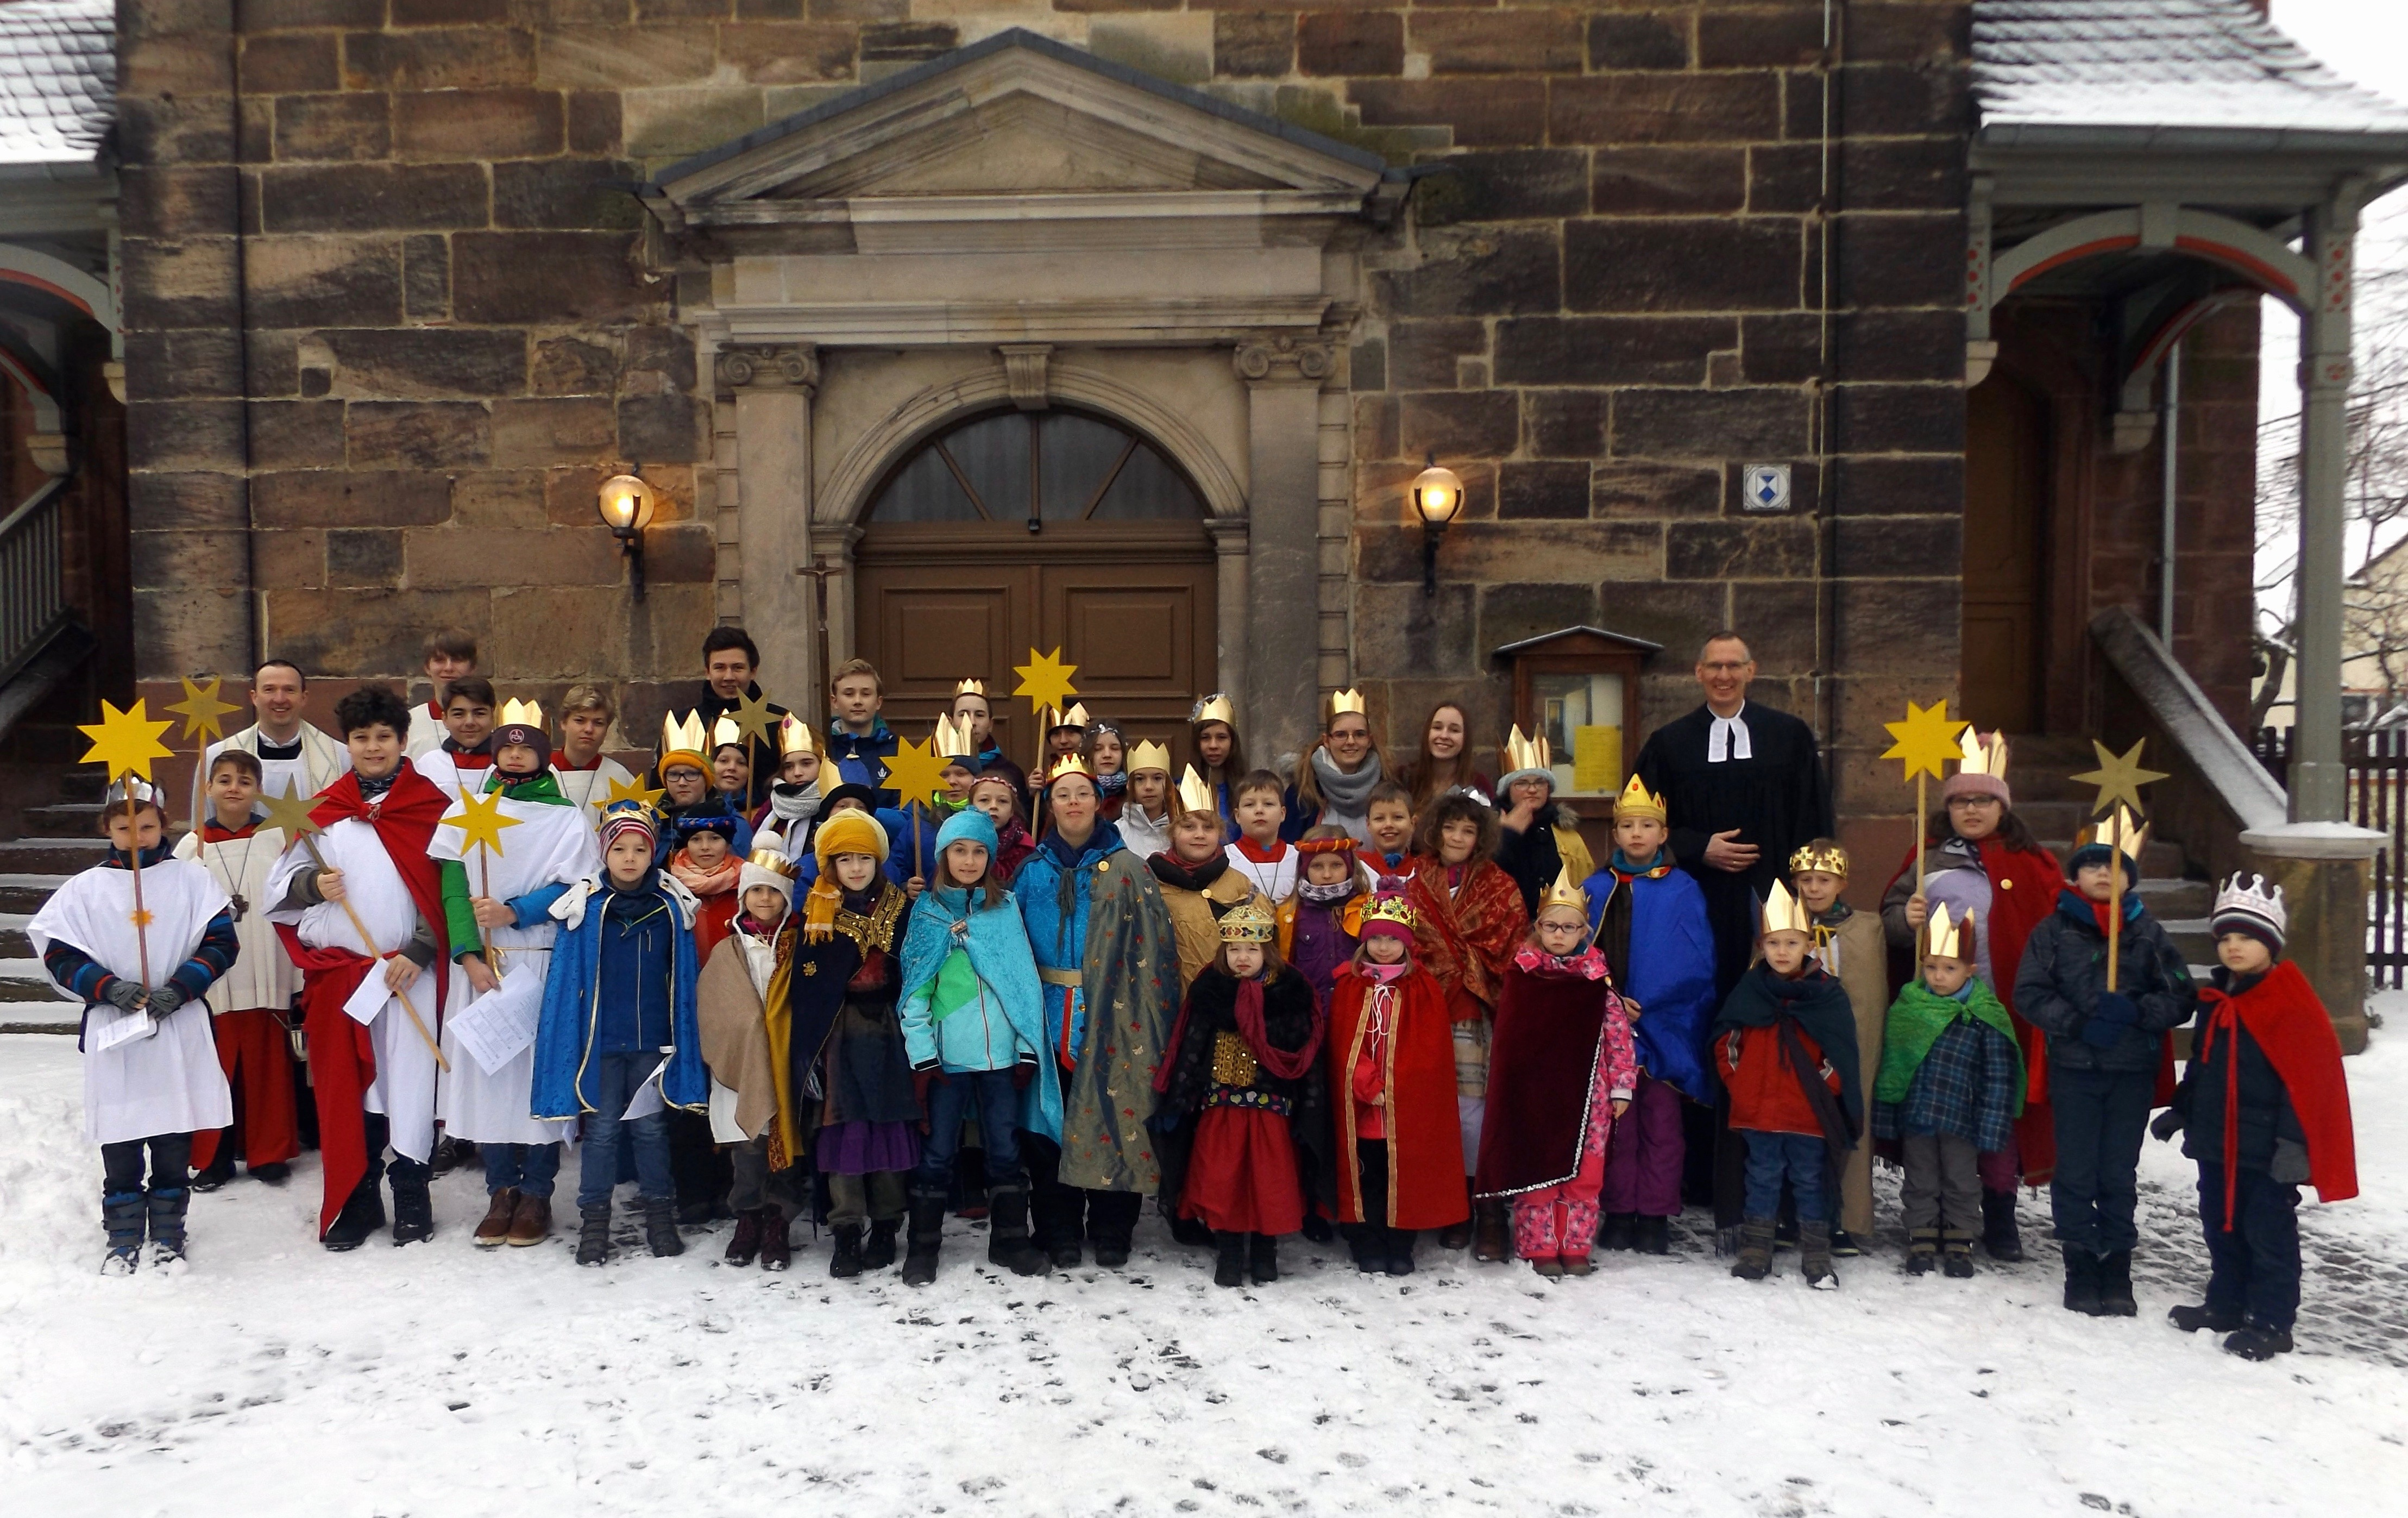 Sternsinger 2017 in Bad Berka